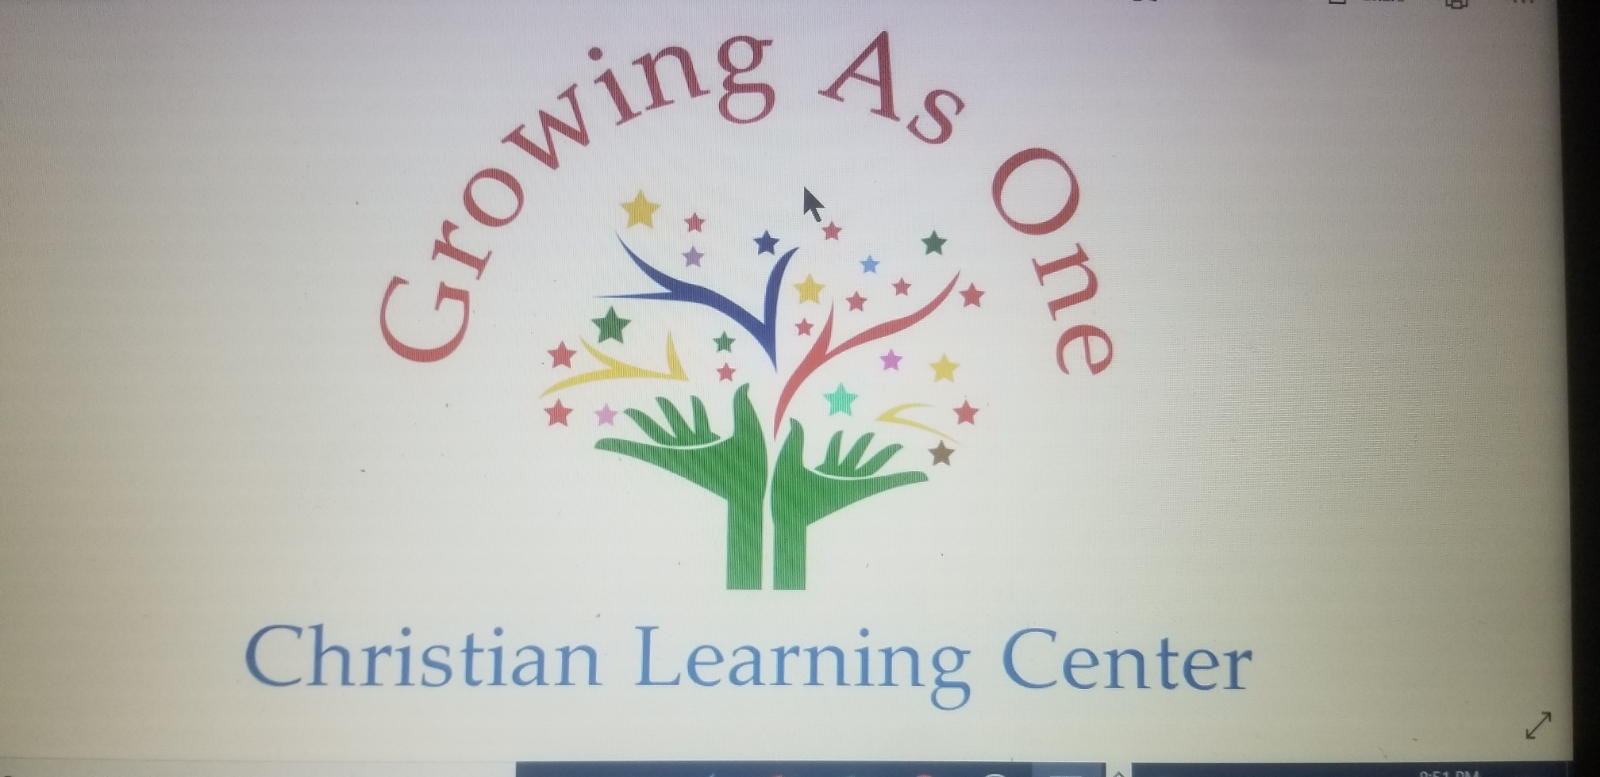 Growing As One Christian Learning Center